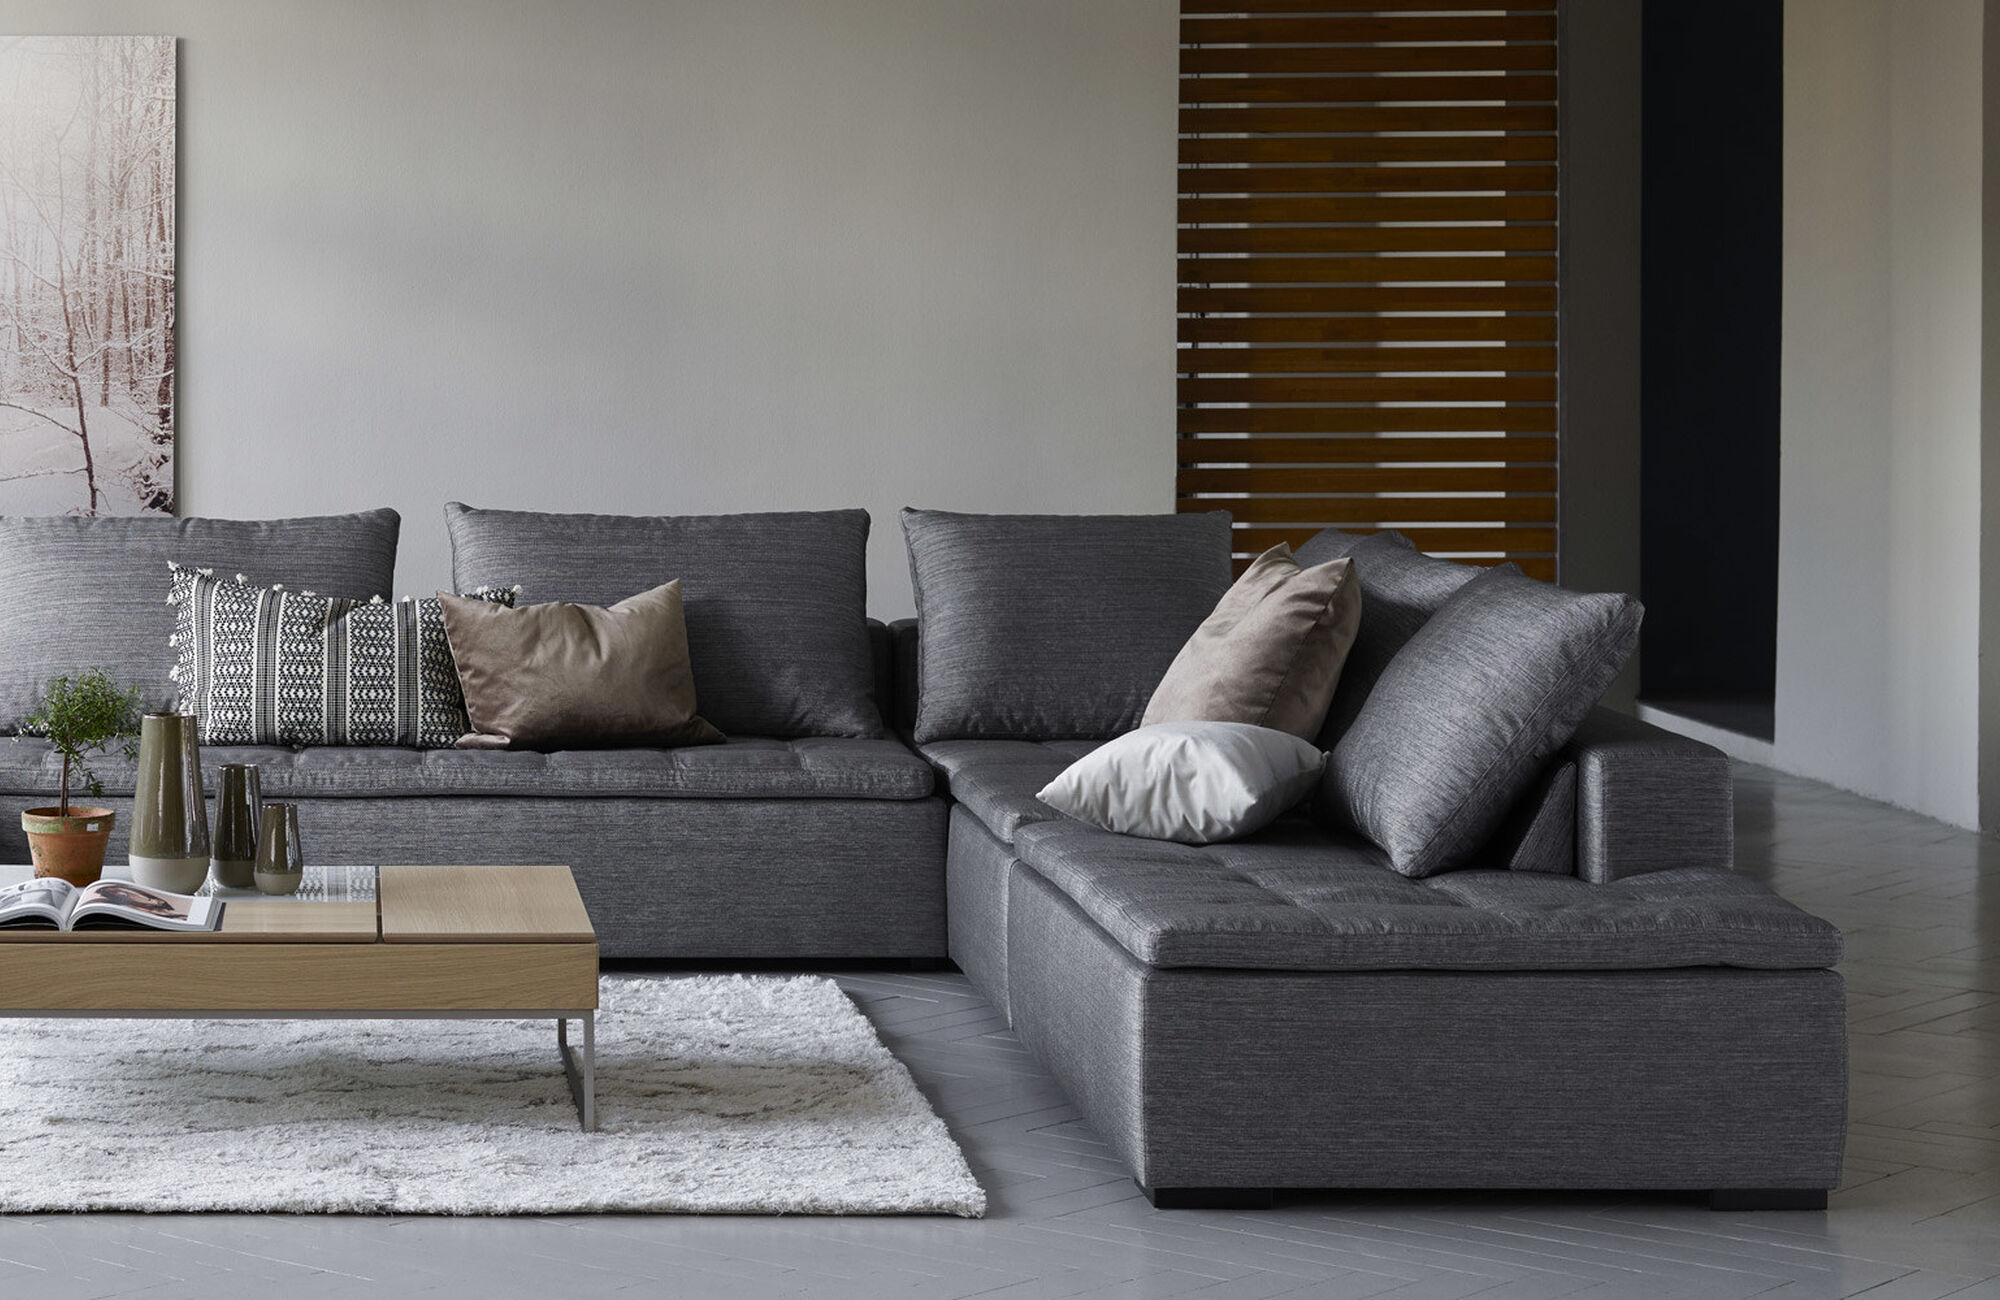 Chaise lounge sofas - Mezzo sofa with resting unit